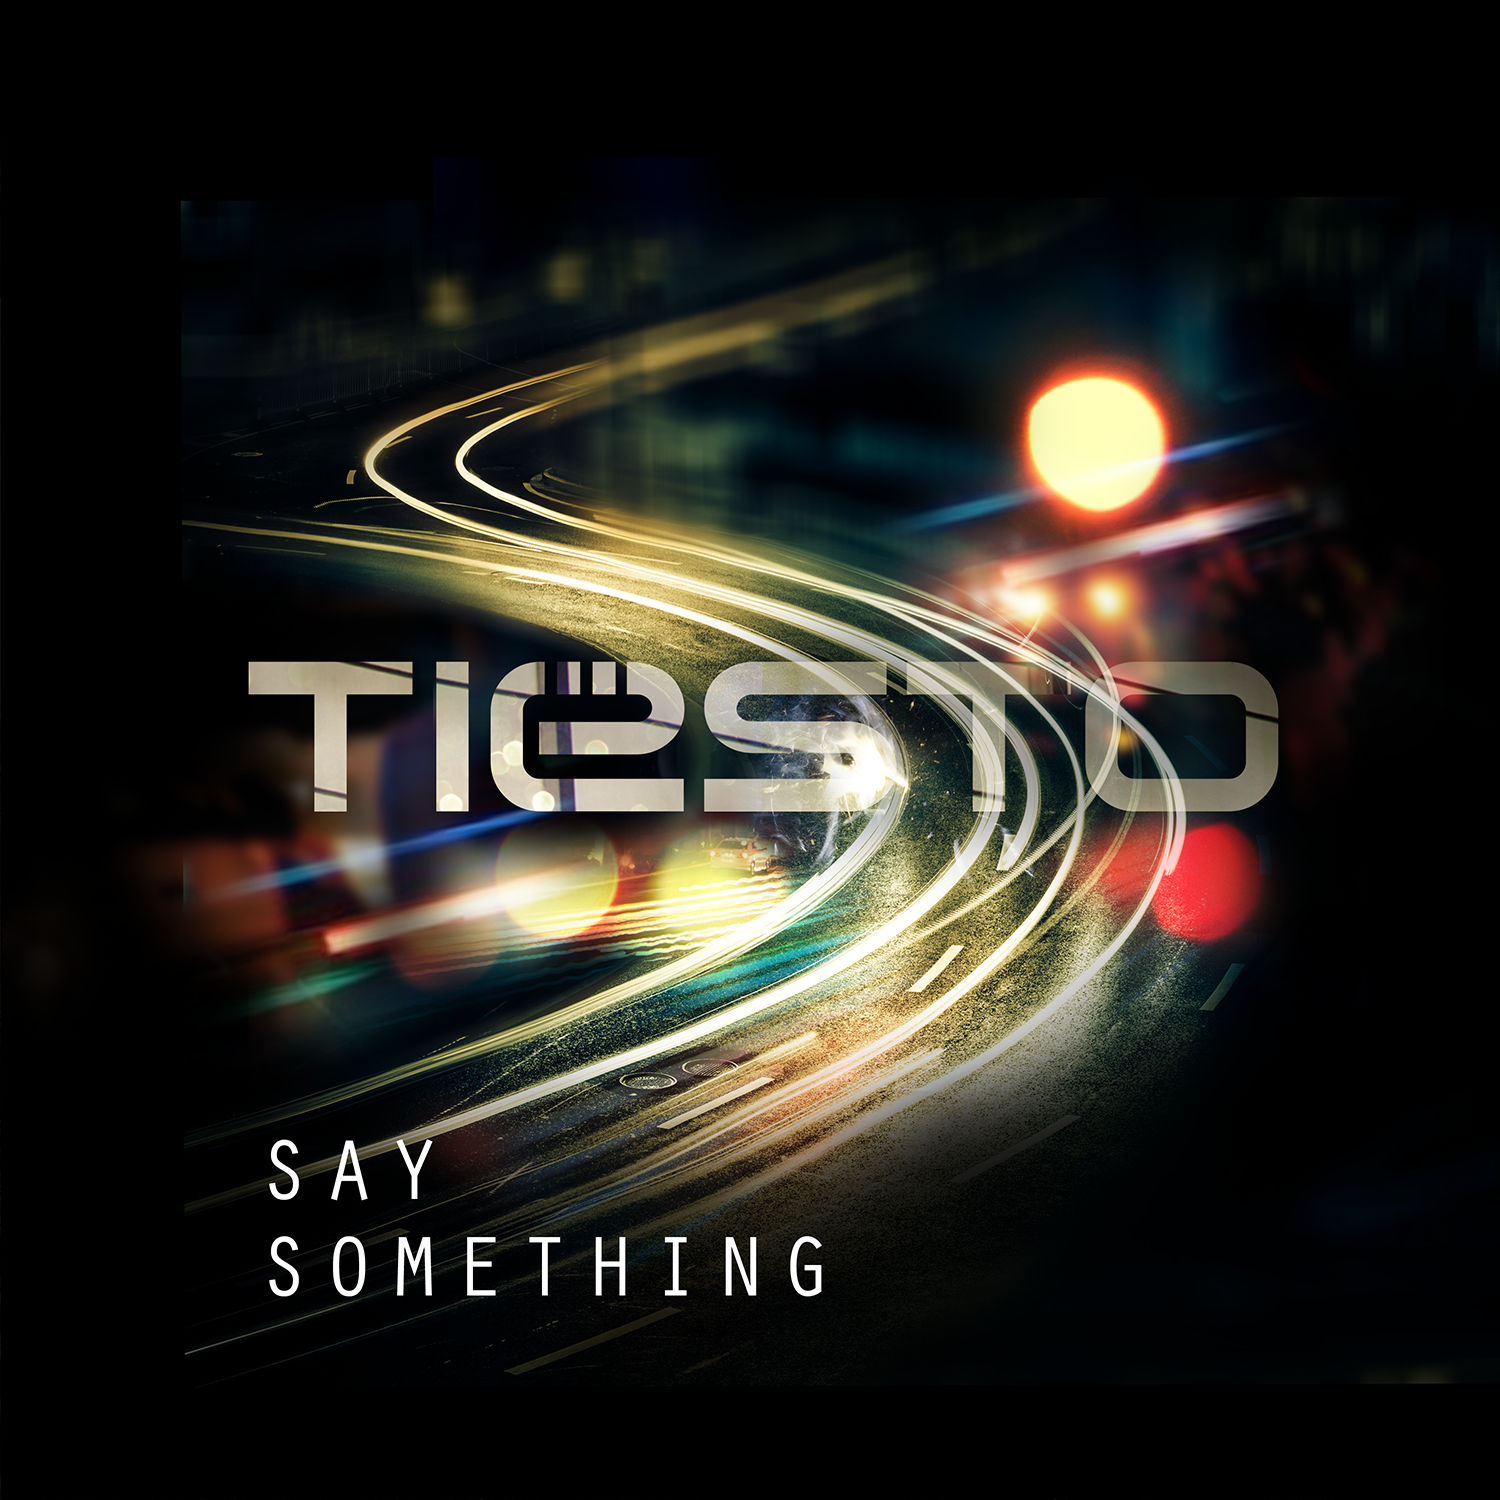 Tiësto - Say Something (feat. Emily Rowed) Artwork